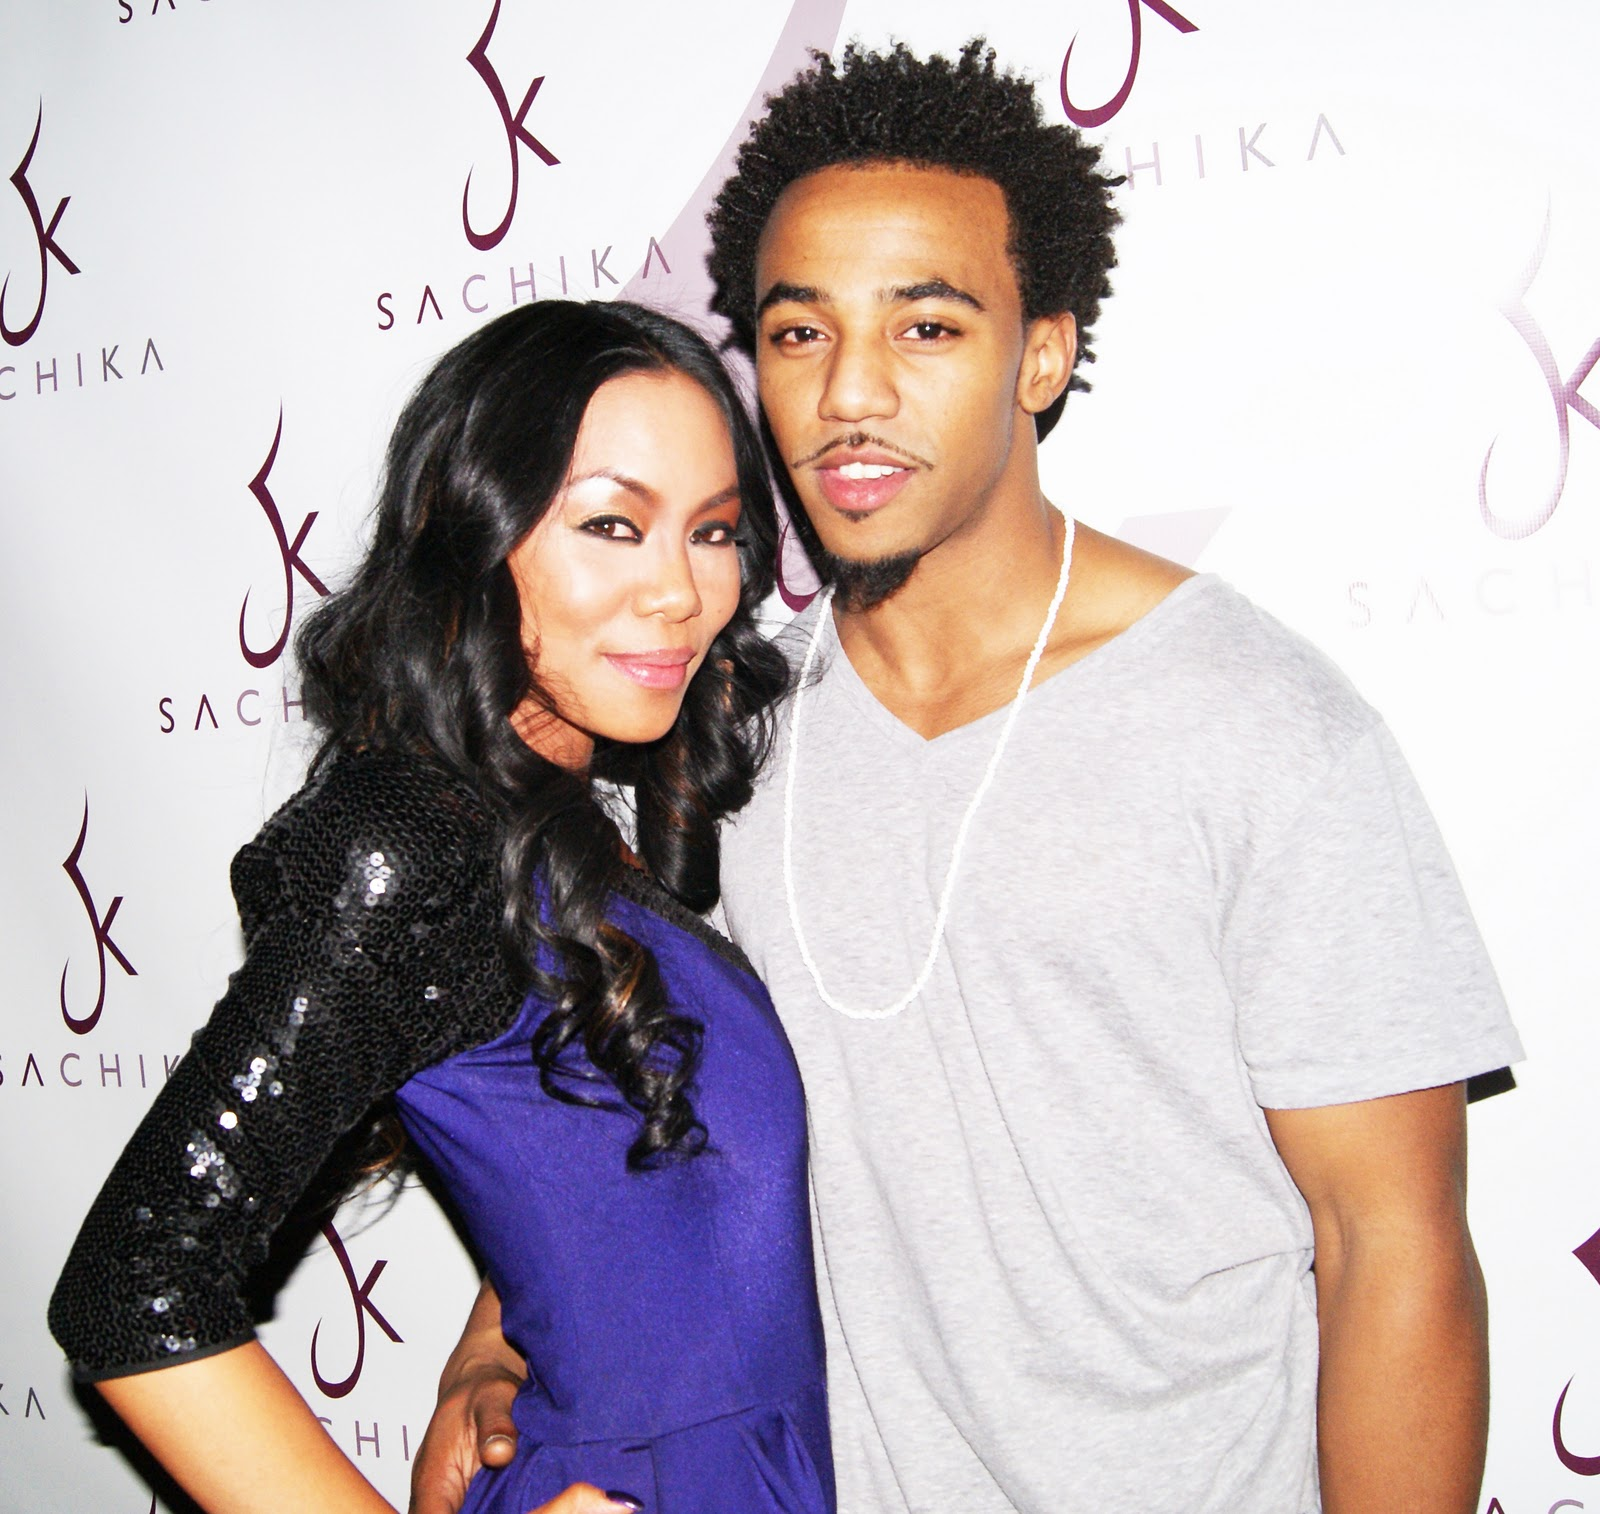 faison dating Browse olamide faison dating natalie nunn pictures, photos, images, gifs, and videos on photobucket.